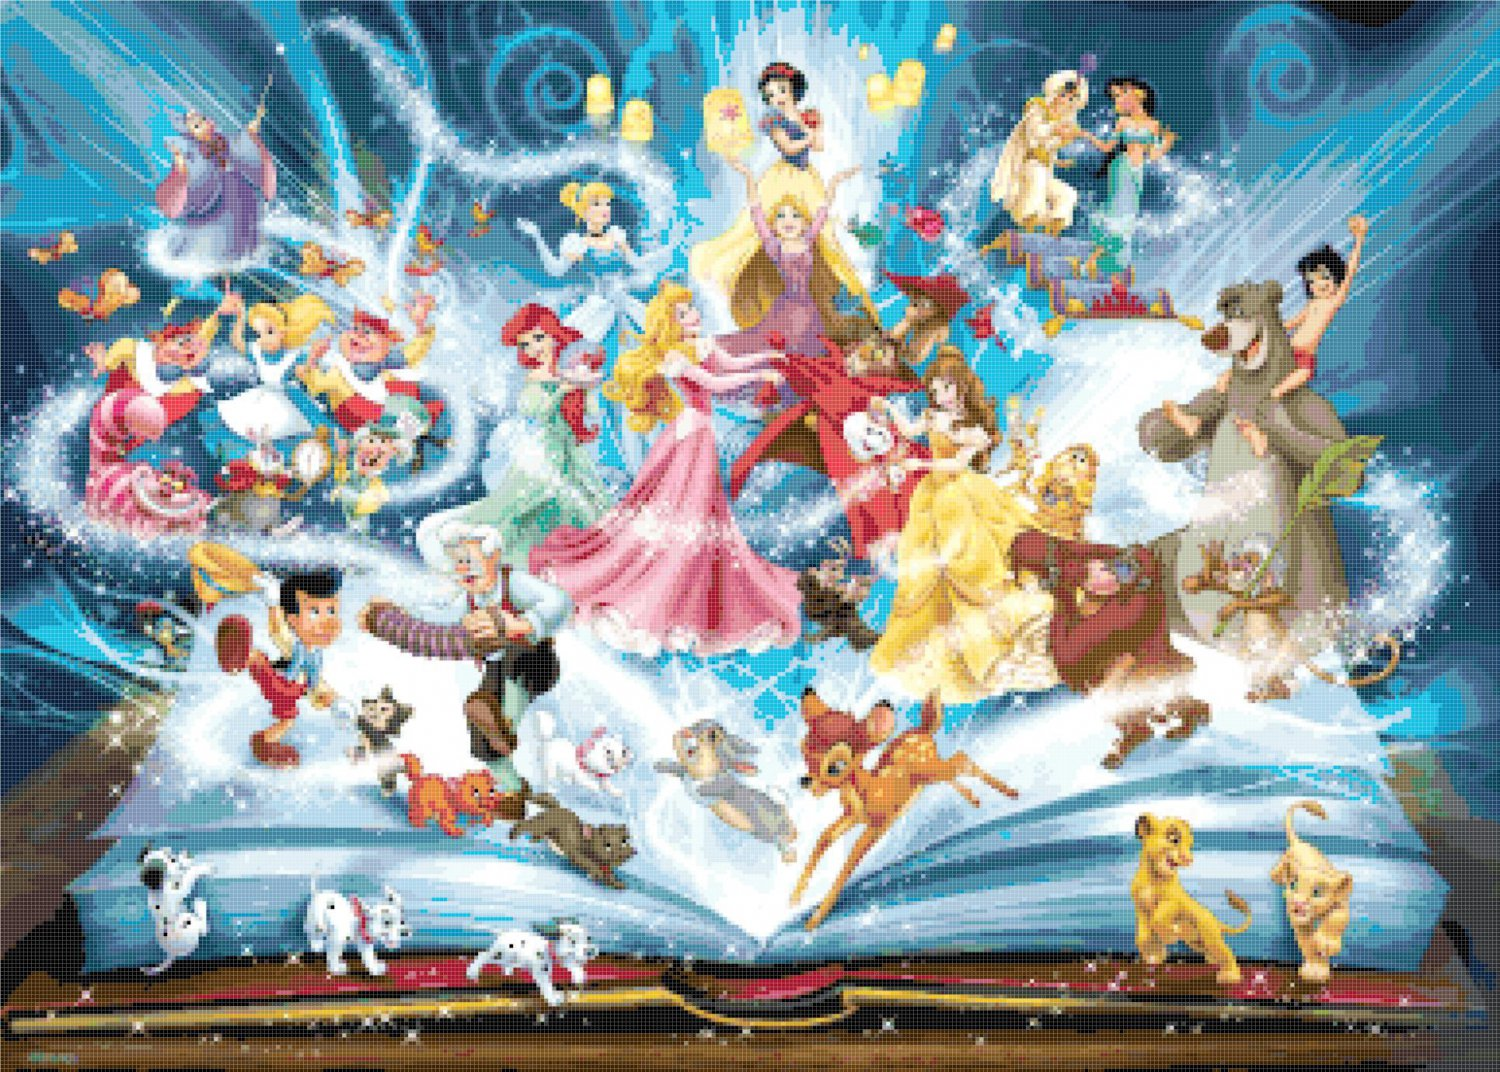 counted Cross stitch pattern disney best themes stained 386*276 stitches E2273